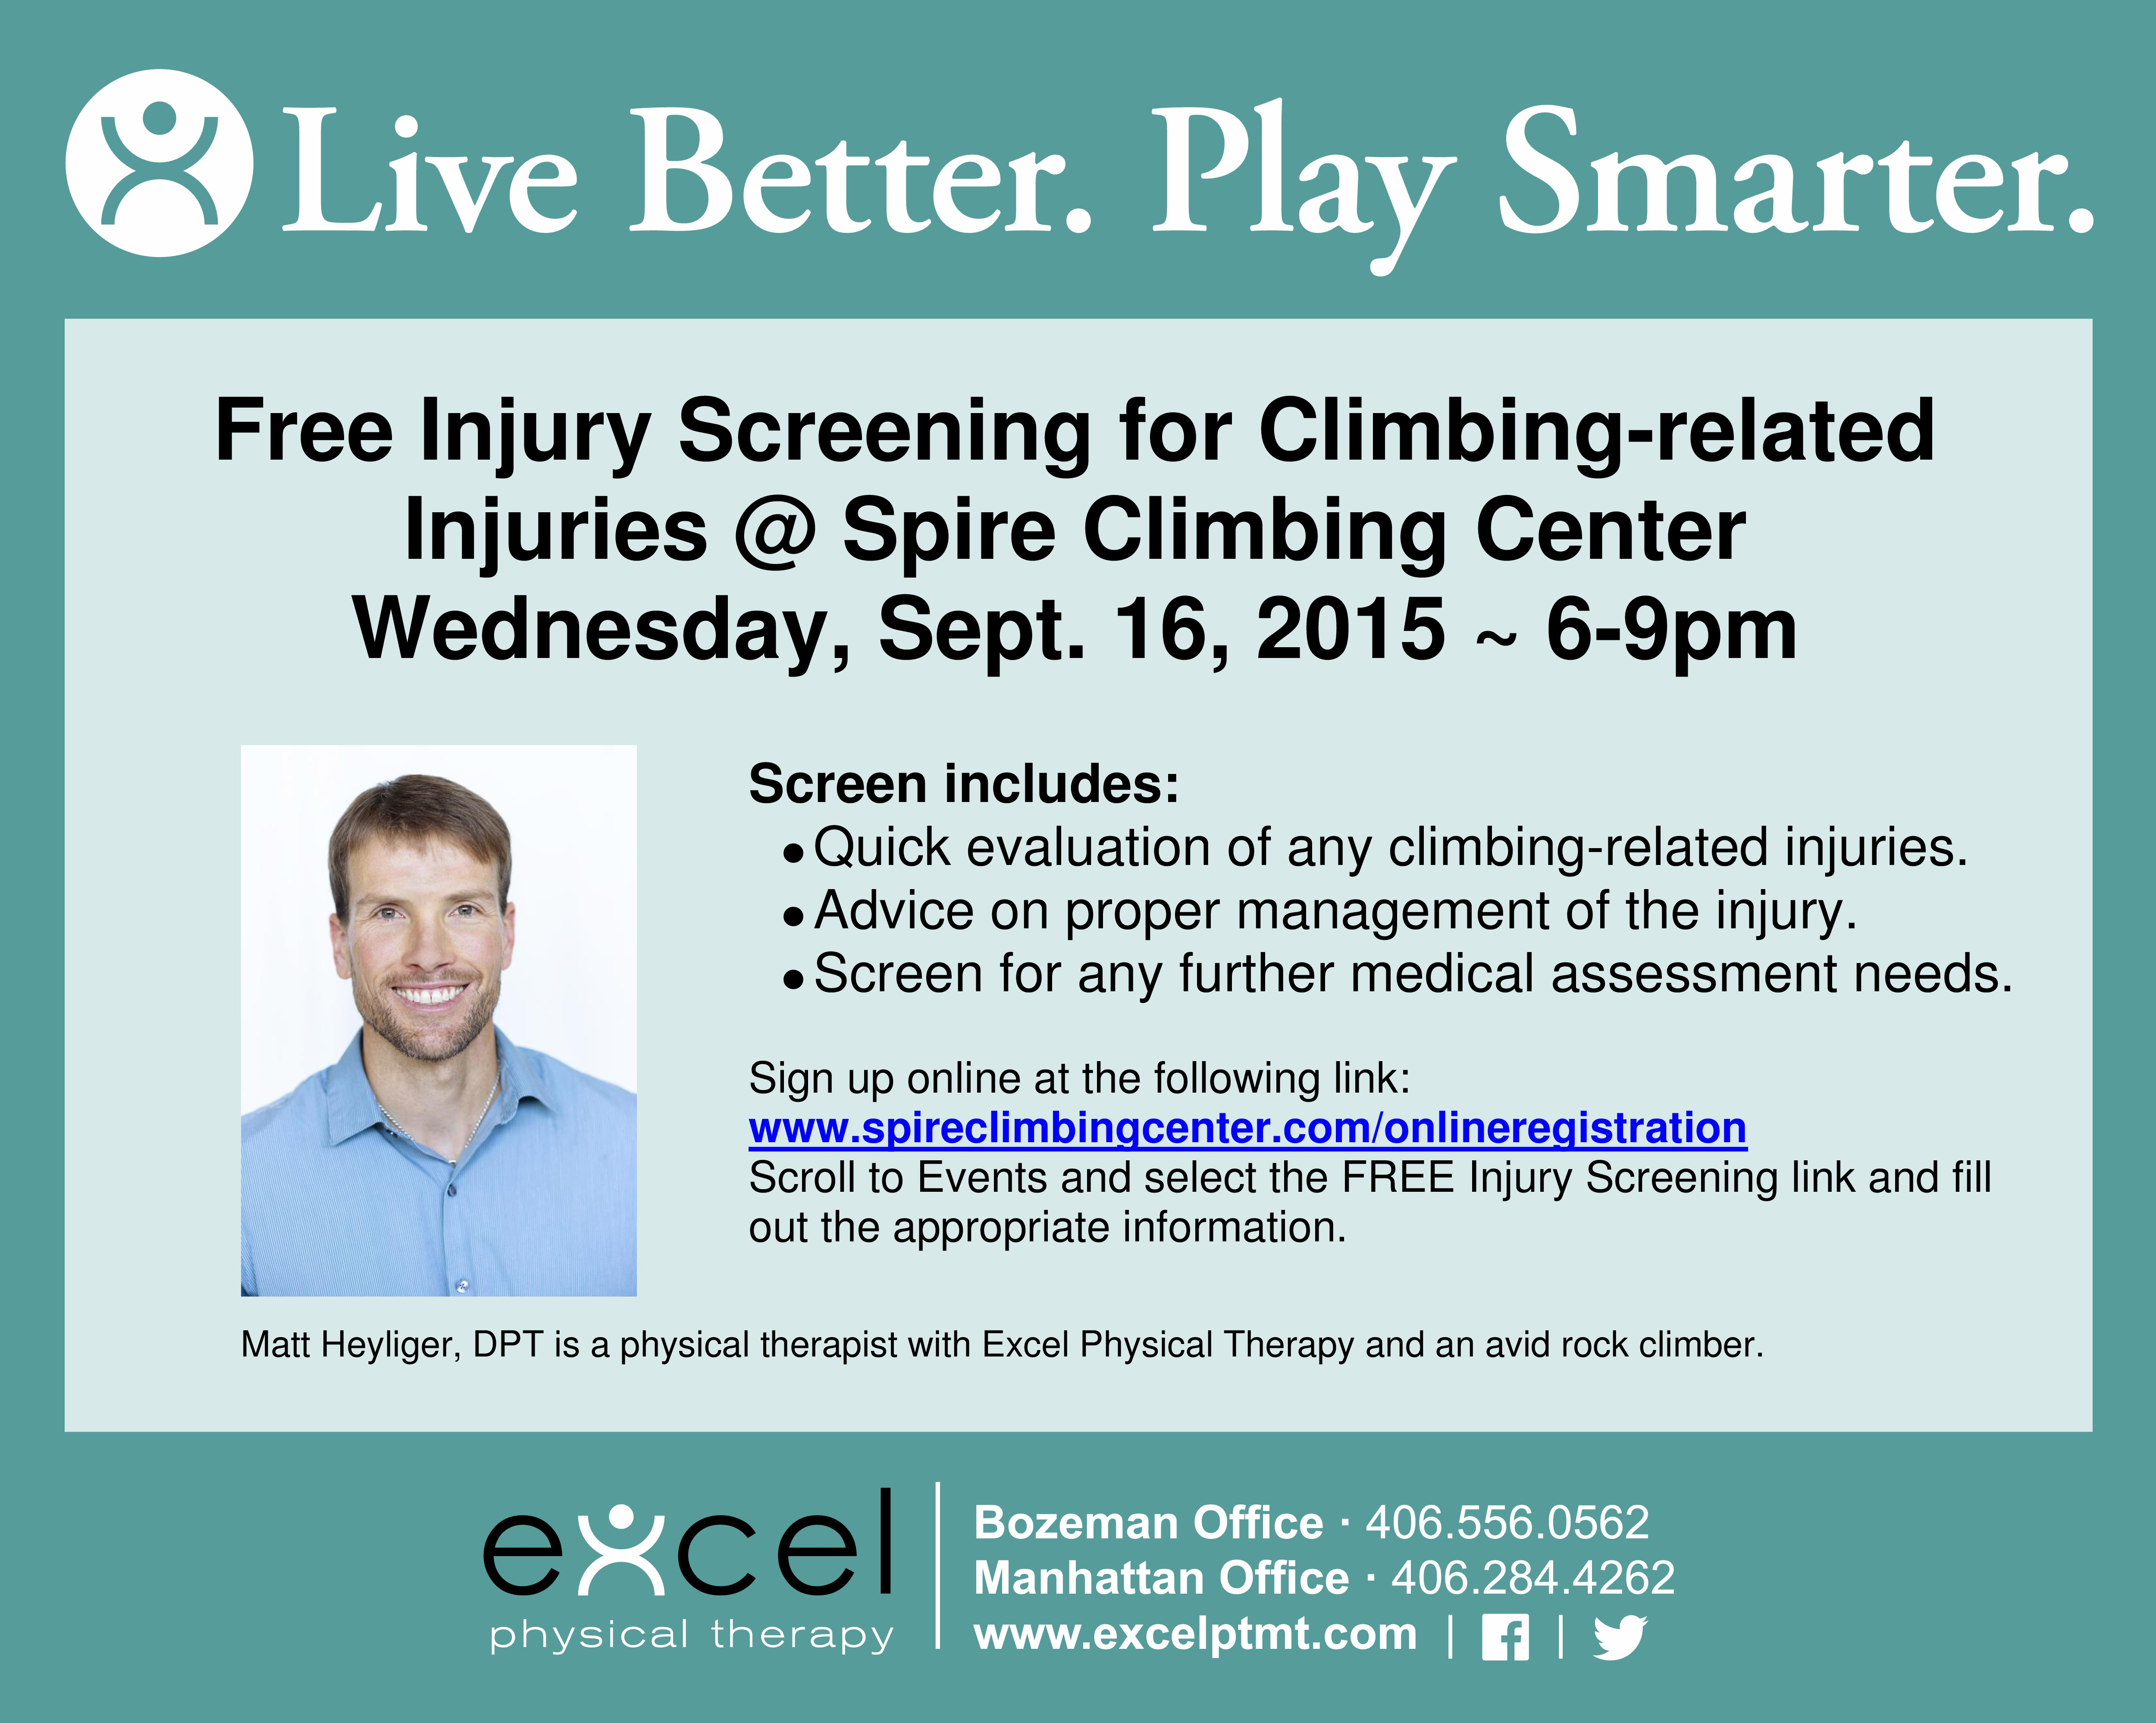 Excel physical therapy - Excel Pt Matt Spire Climbing Injury Screens Facebook Jpeg